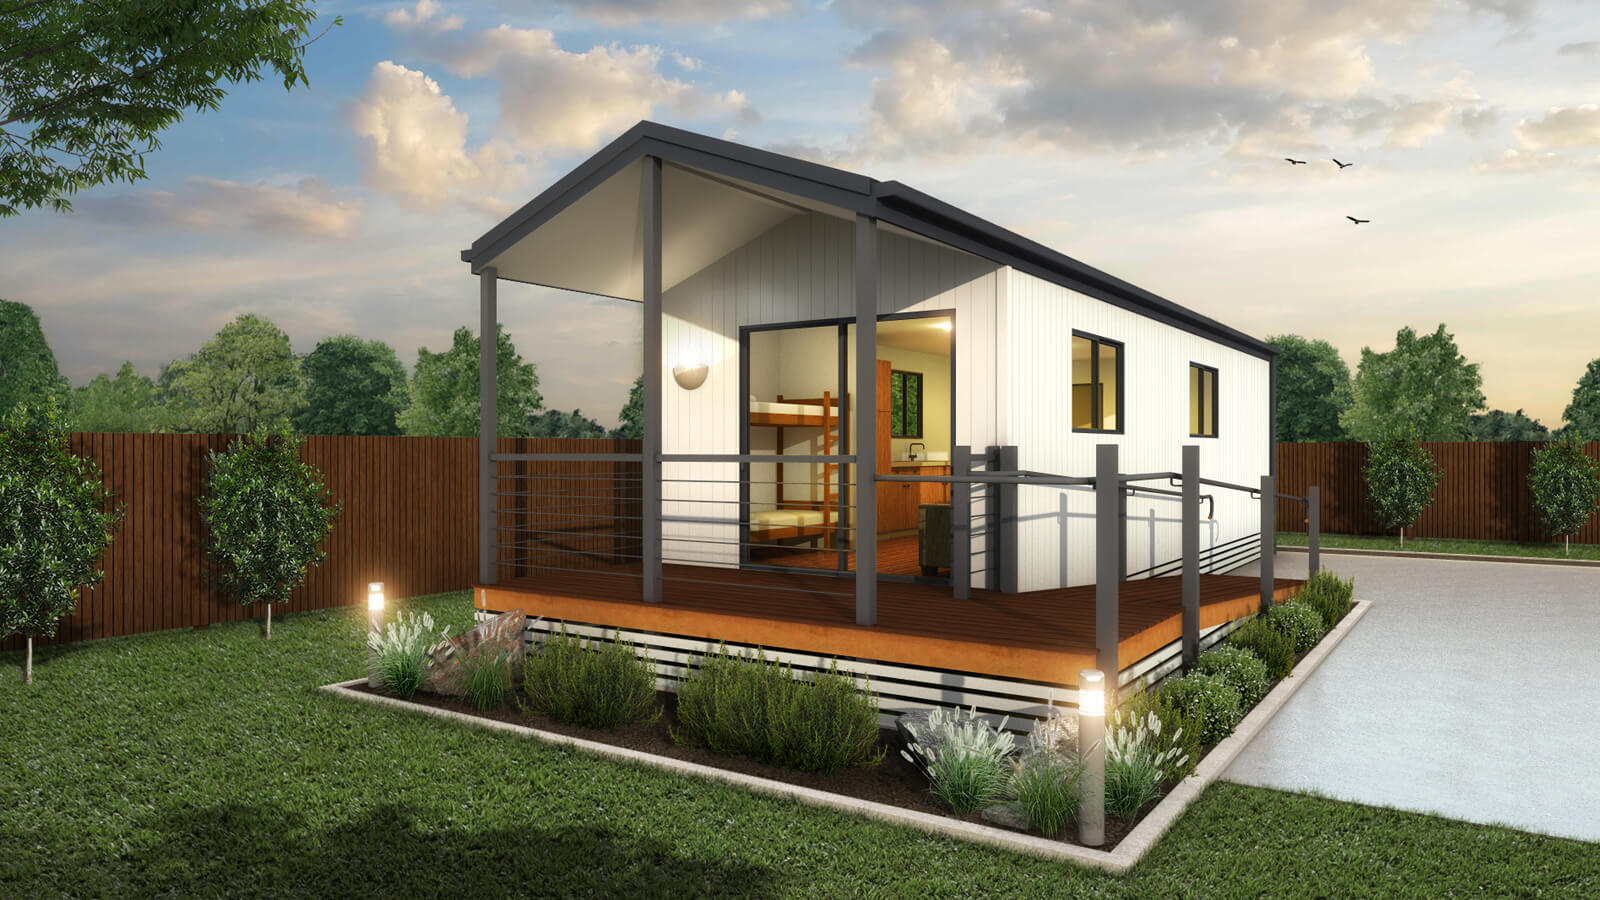 Eastcoast Homes' Building Design